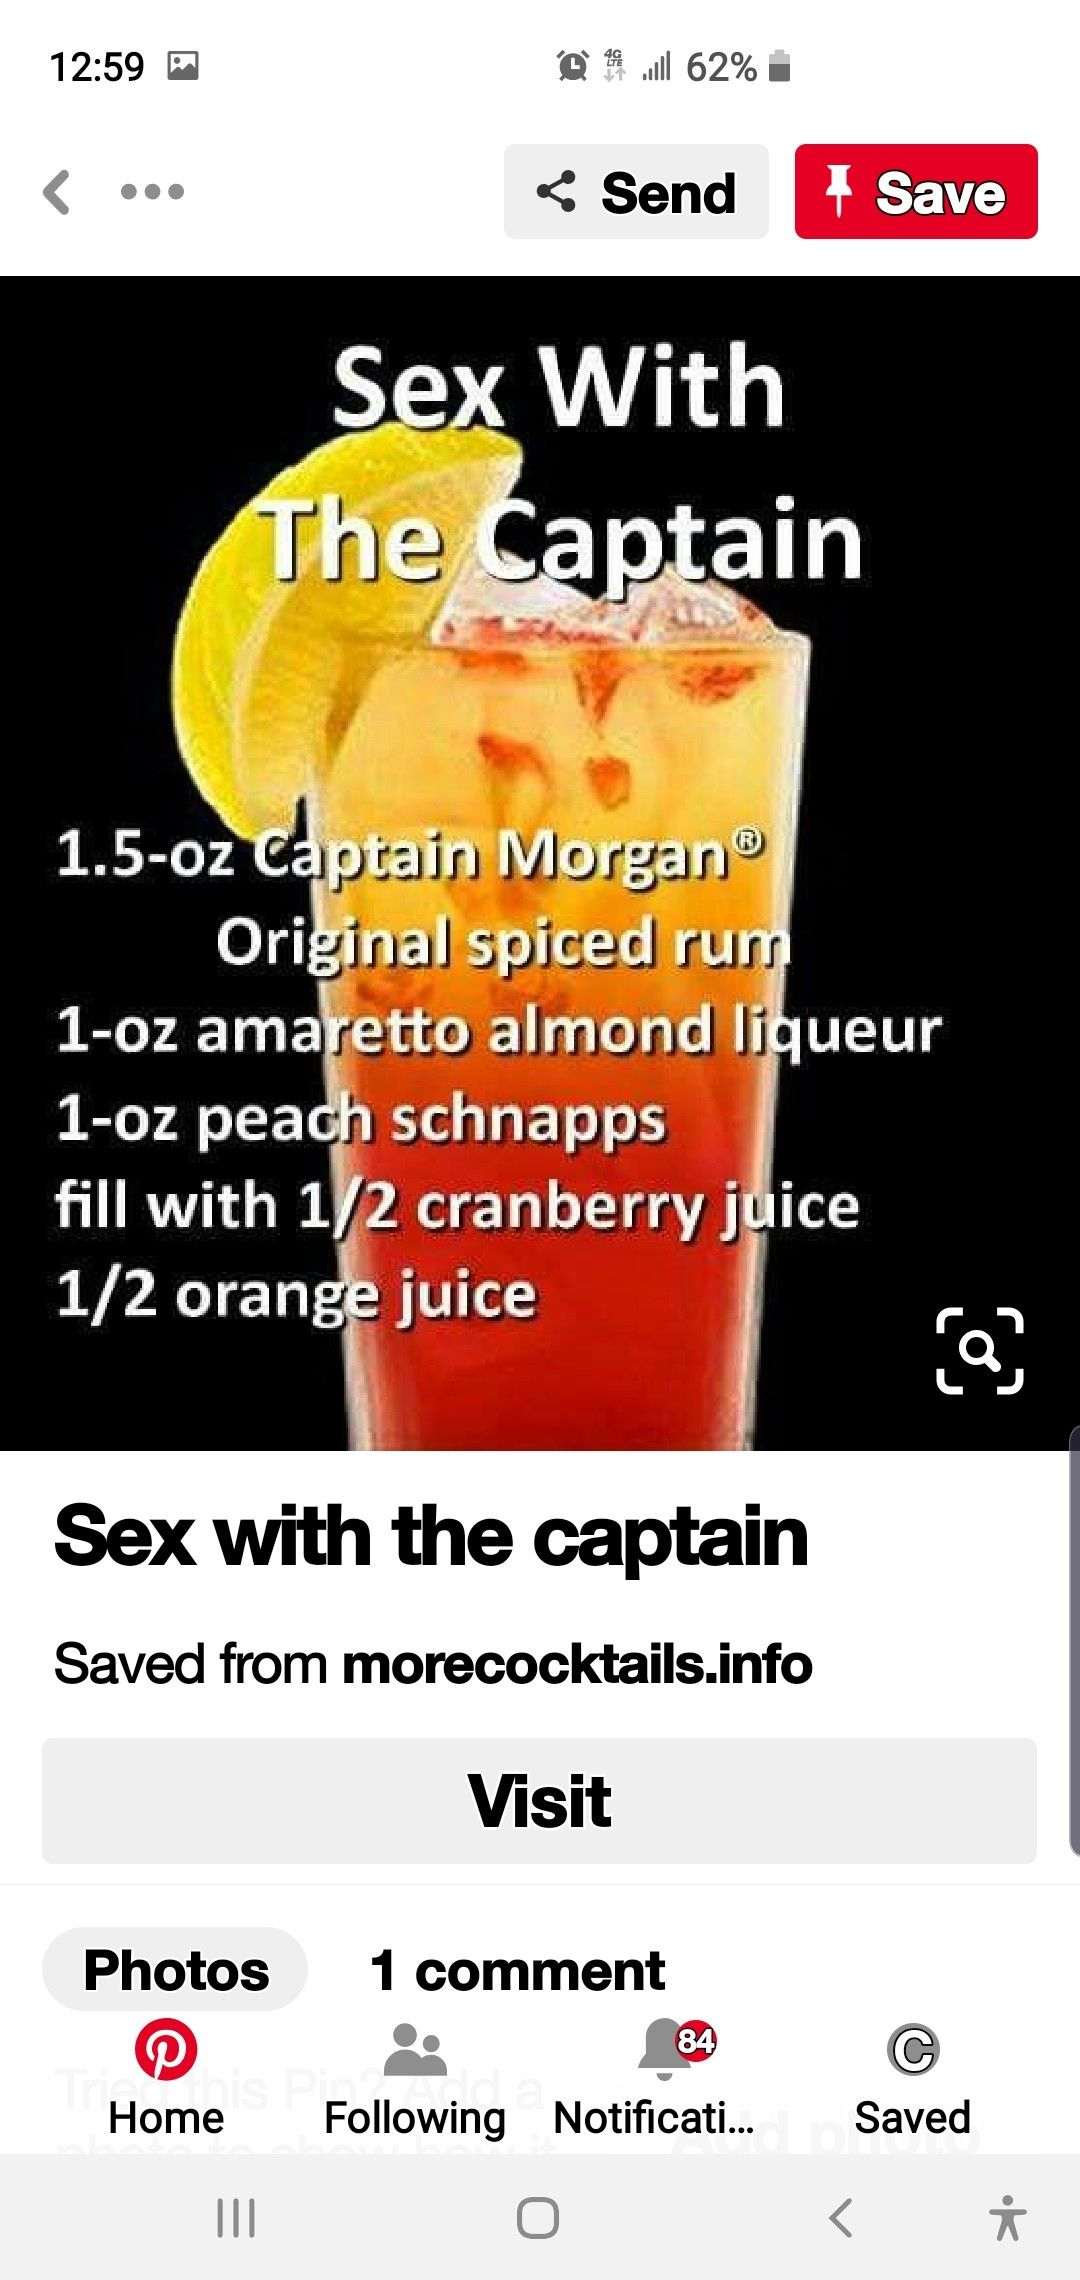 Pin By Kelly Shallo Photography On Liquor Land In 2020 Alcoholic Drinks Schnapps Peach Schnapps